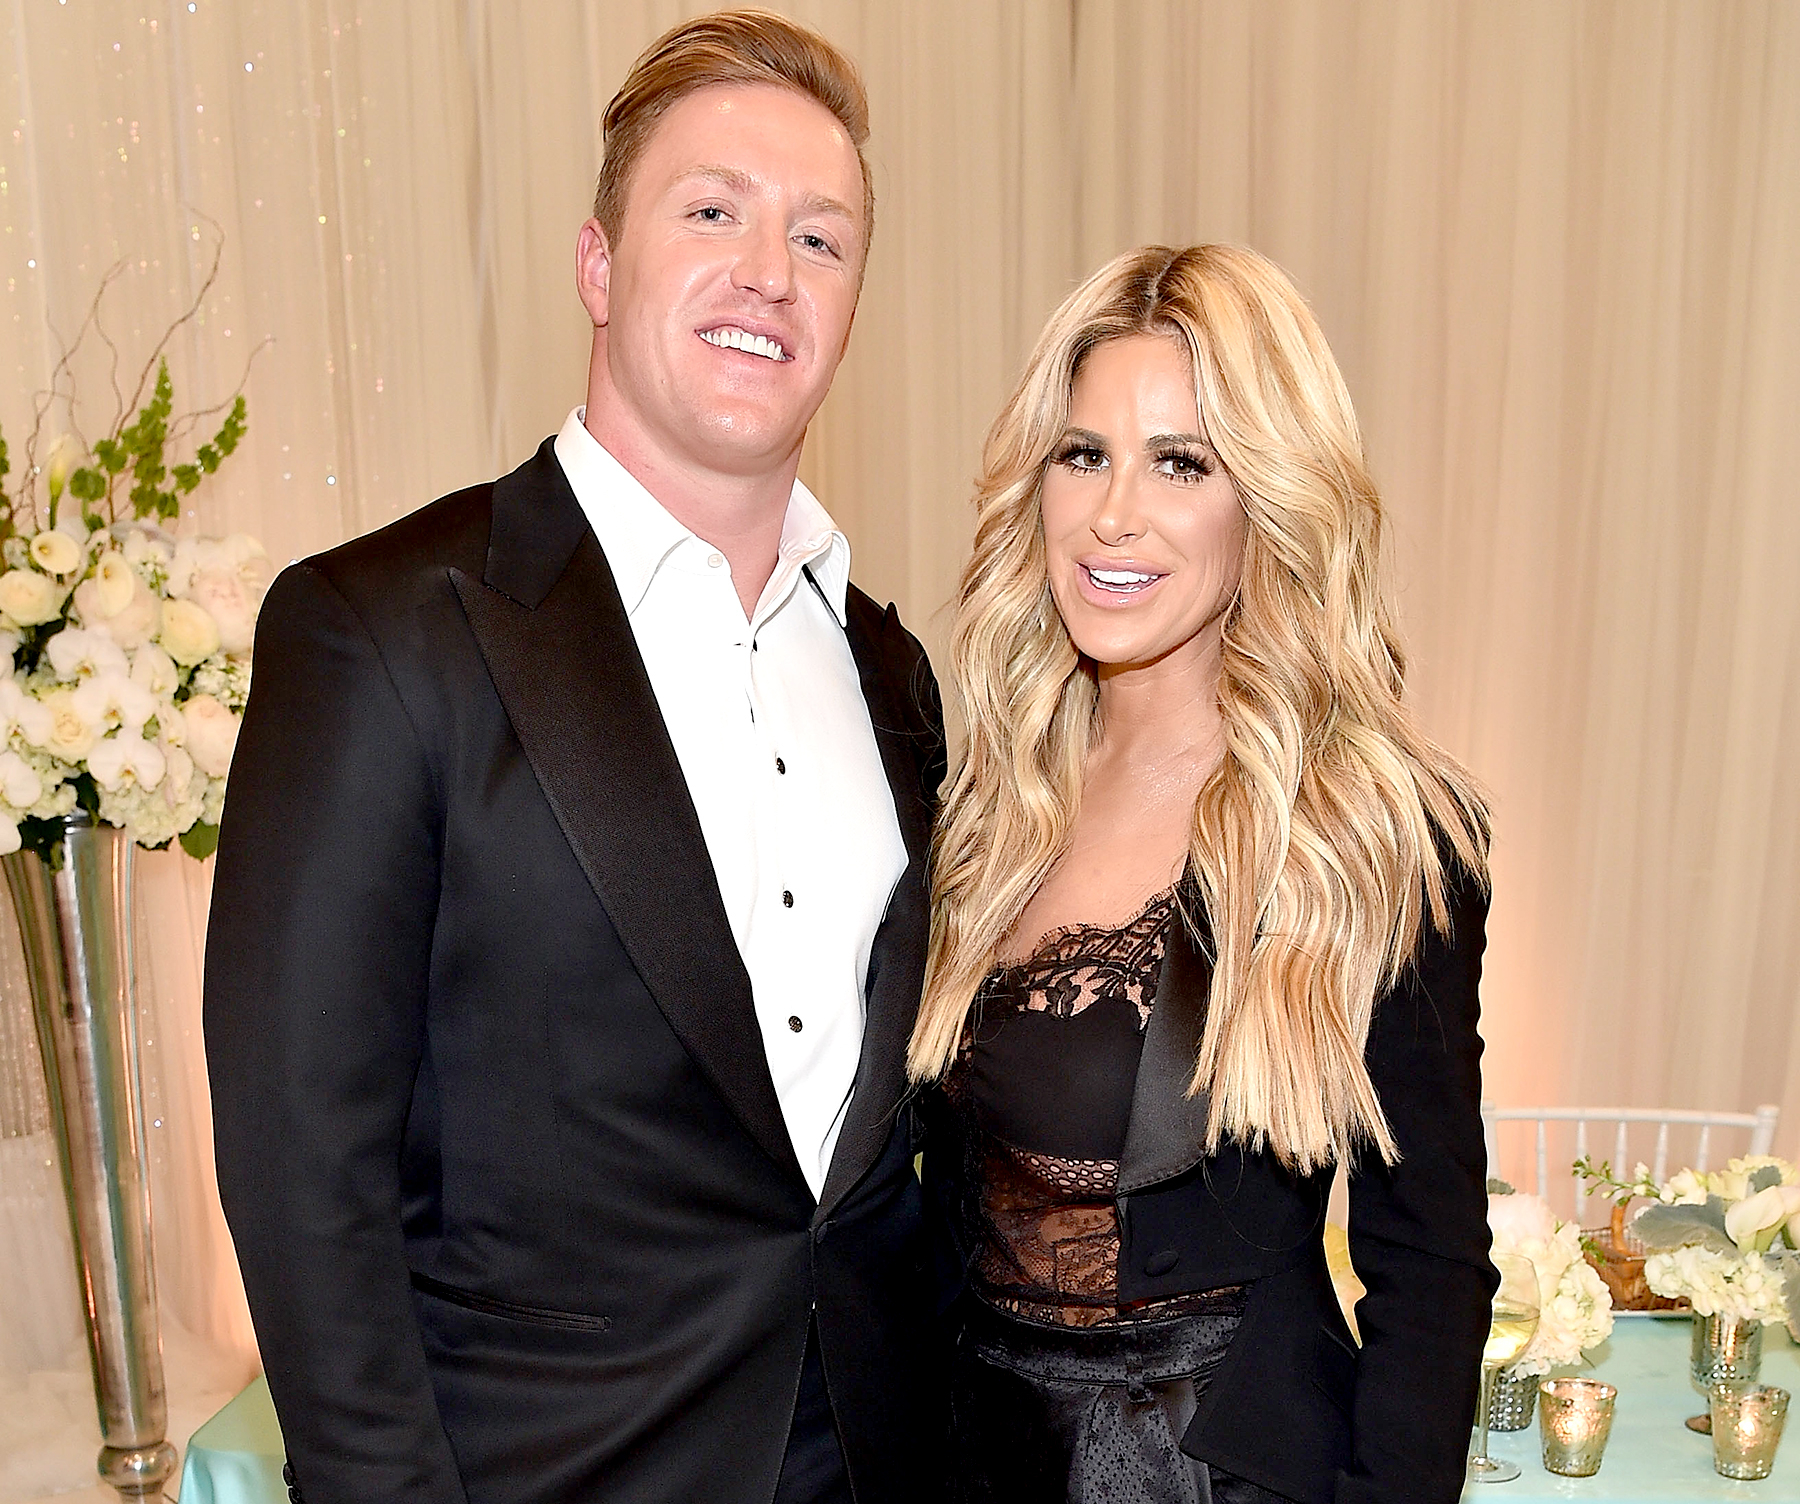 Kroy Biermann and Kim Zolciak Biermann attend Kim Zolciak's Birthday Party on May 6, 2016 in Atlanta, Georgia.